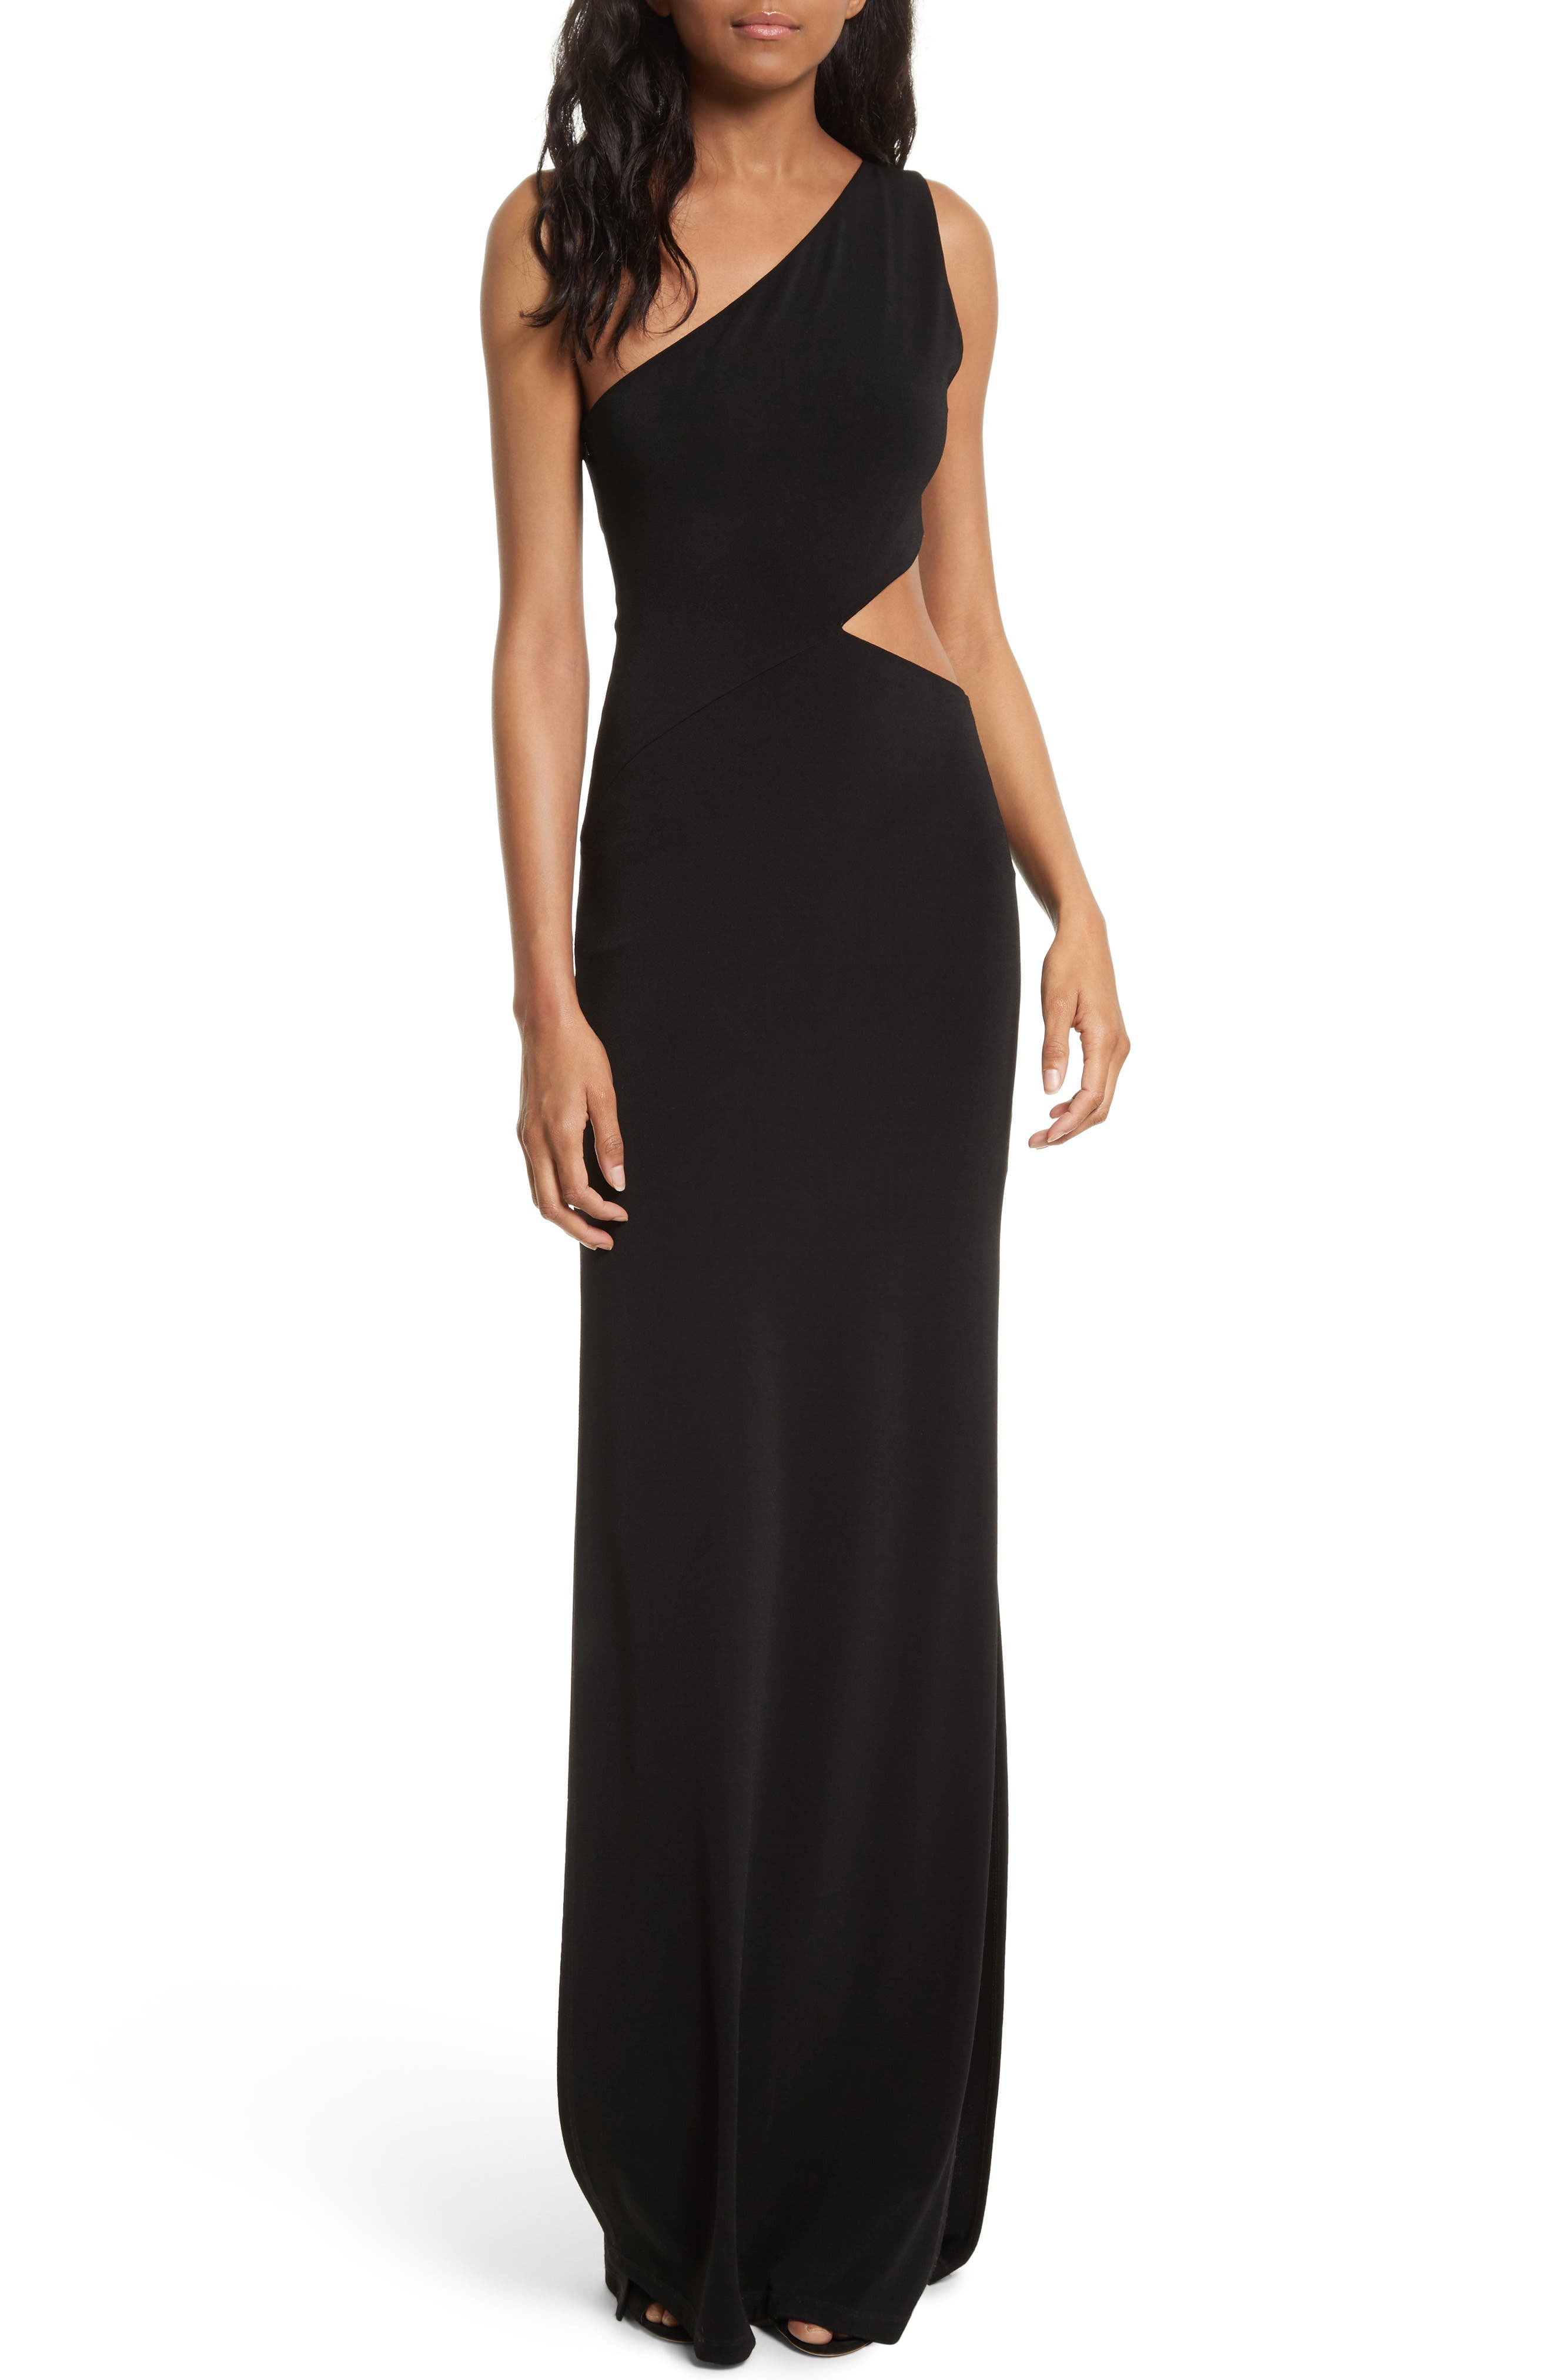 Alice + Olivia Malia Cutout One-Shoulder Maxi Dress